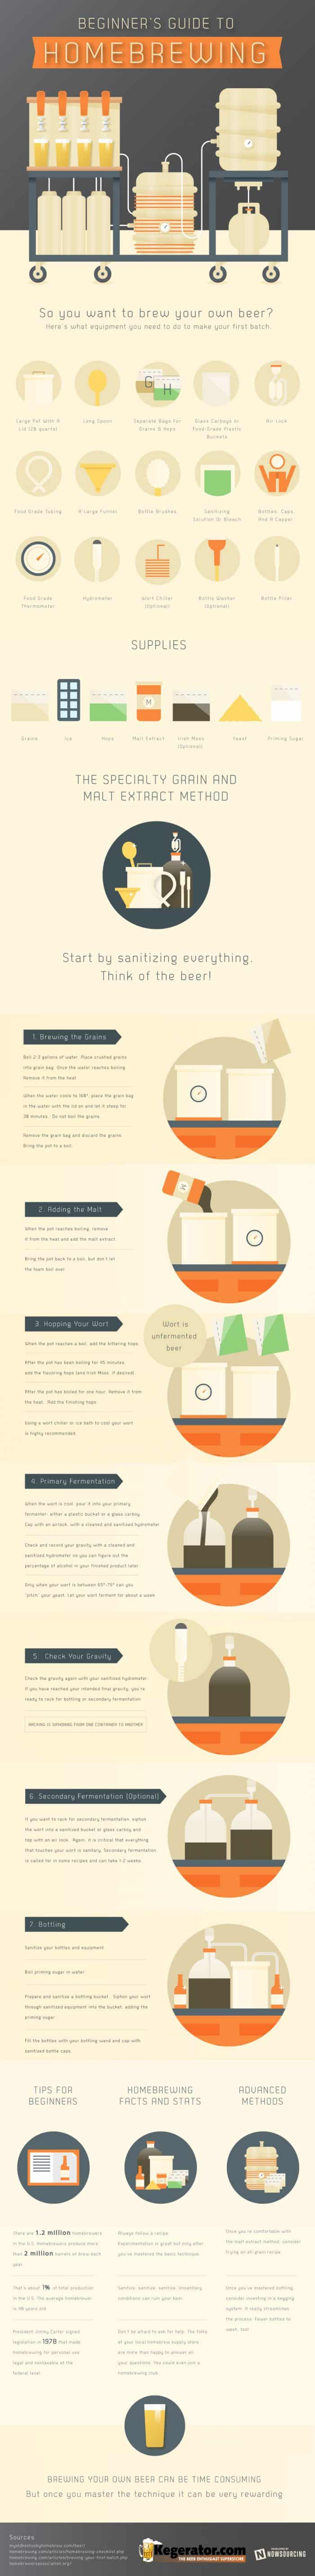 a step by step guide to brewing your own beer at home